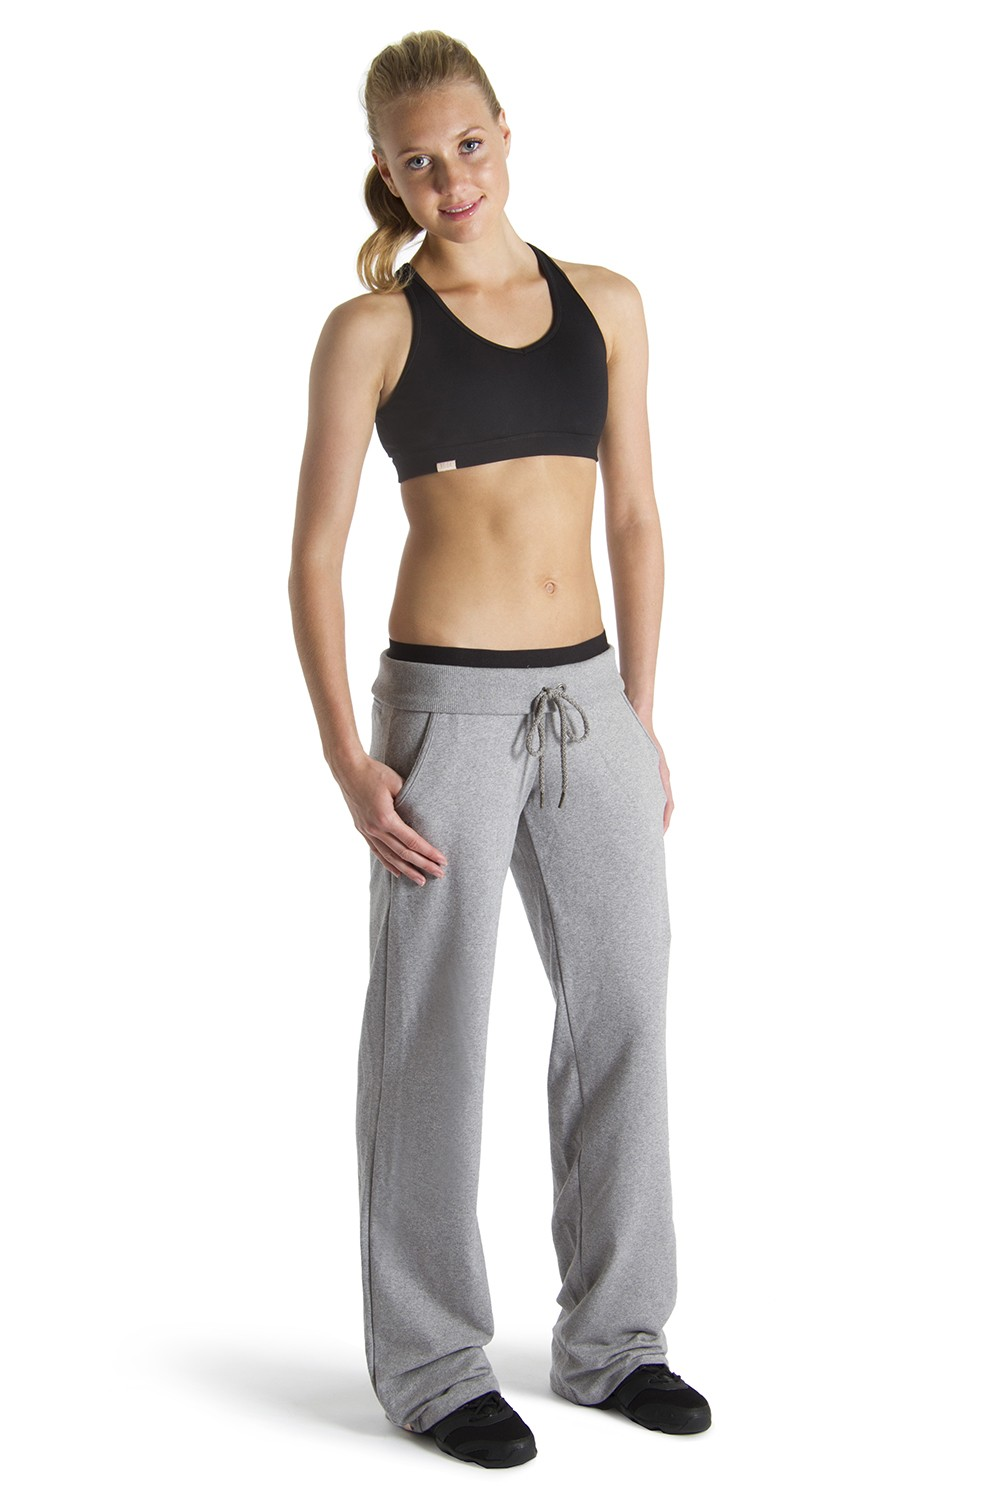 Loose Fit Trackpant Women's Dance Pants